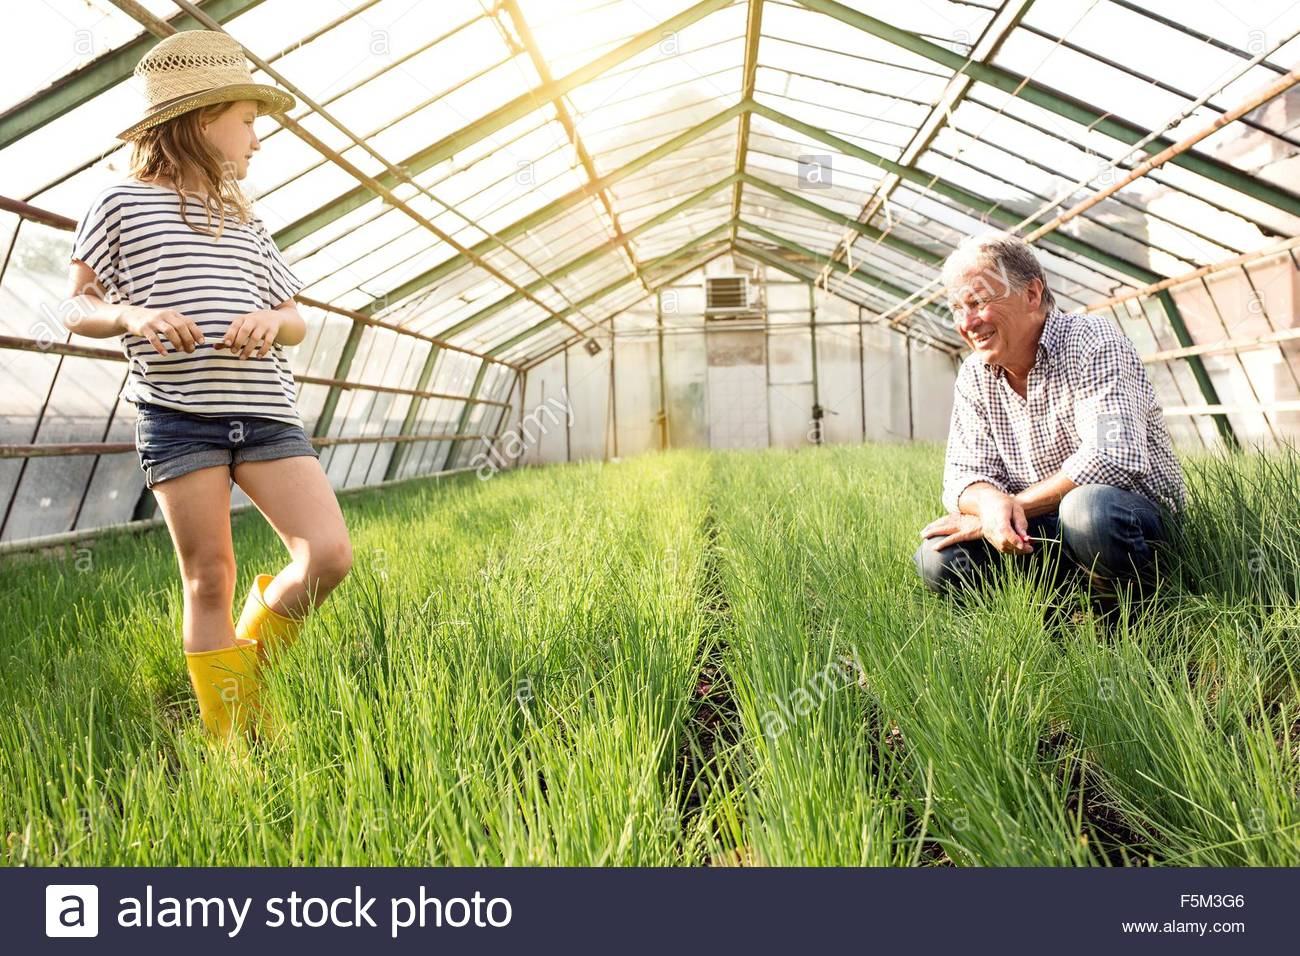 Grandfather and granddaughter in hothouse full of chive plants - Stock Image